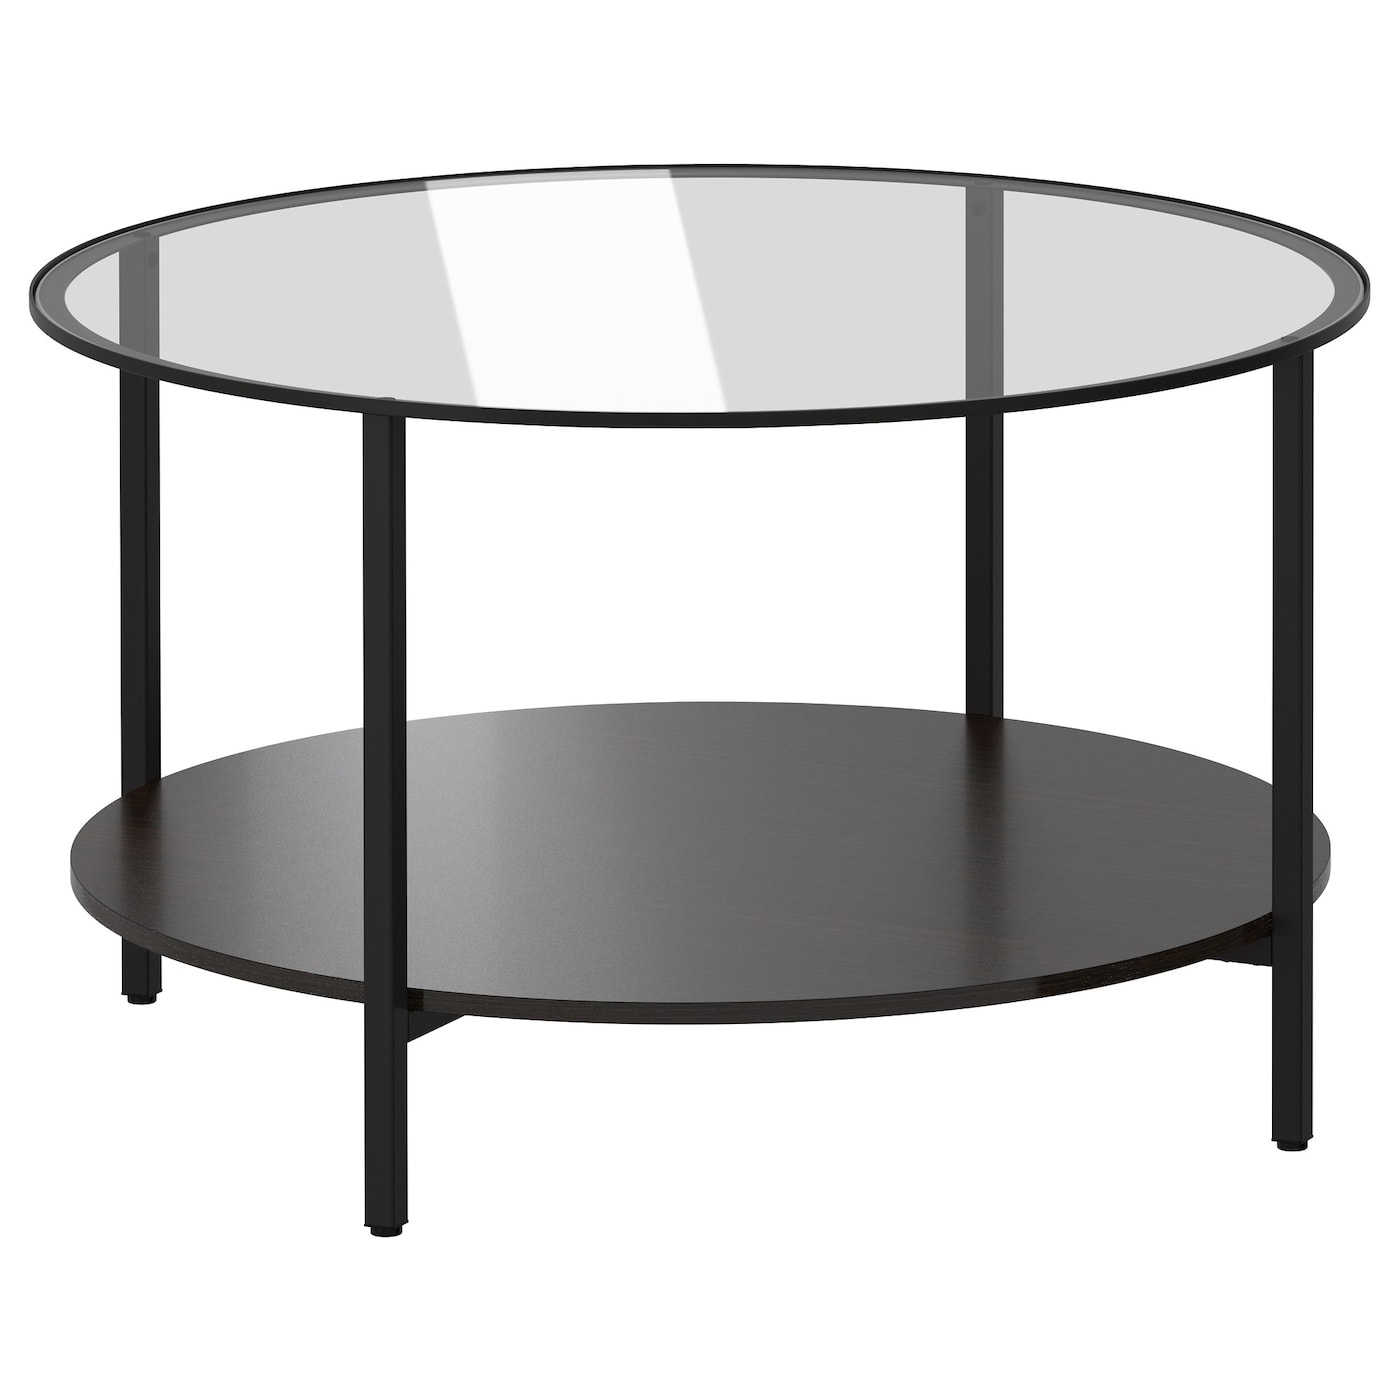 Vittsj coffee table black brown glass 75 cm ikea for Ikea end tables salon